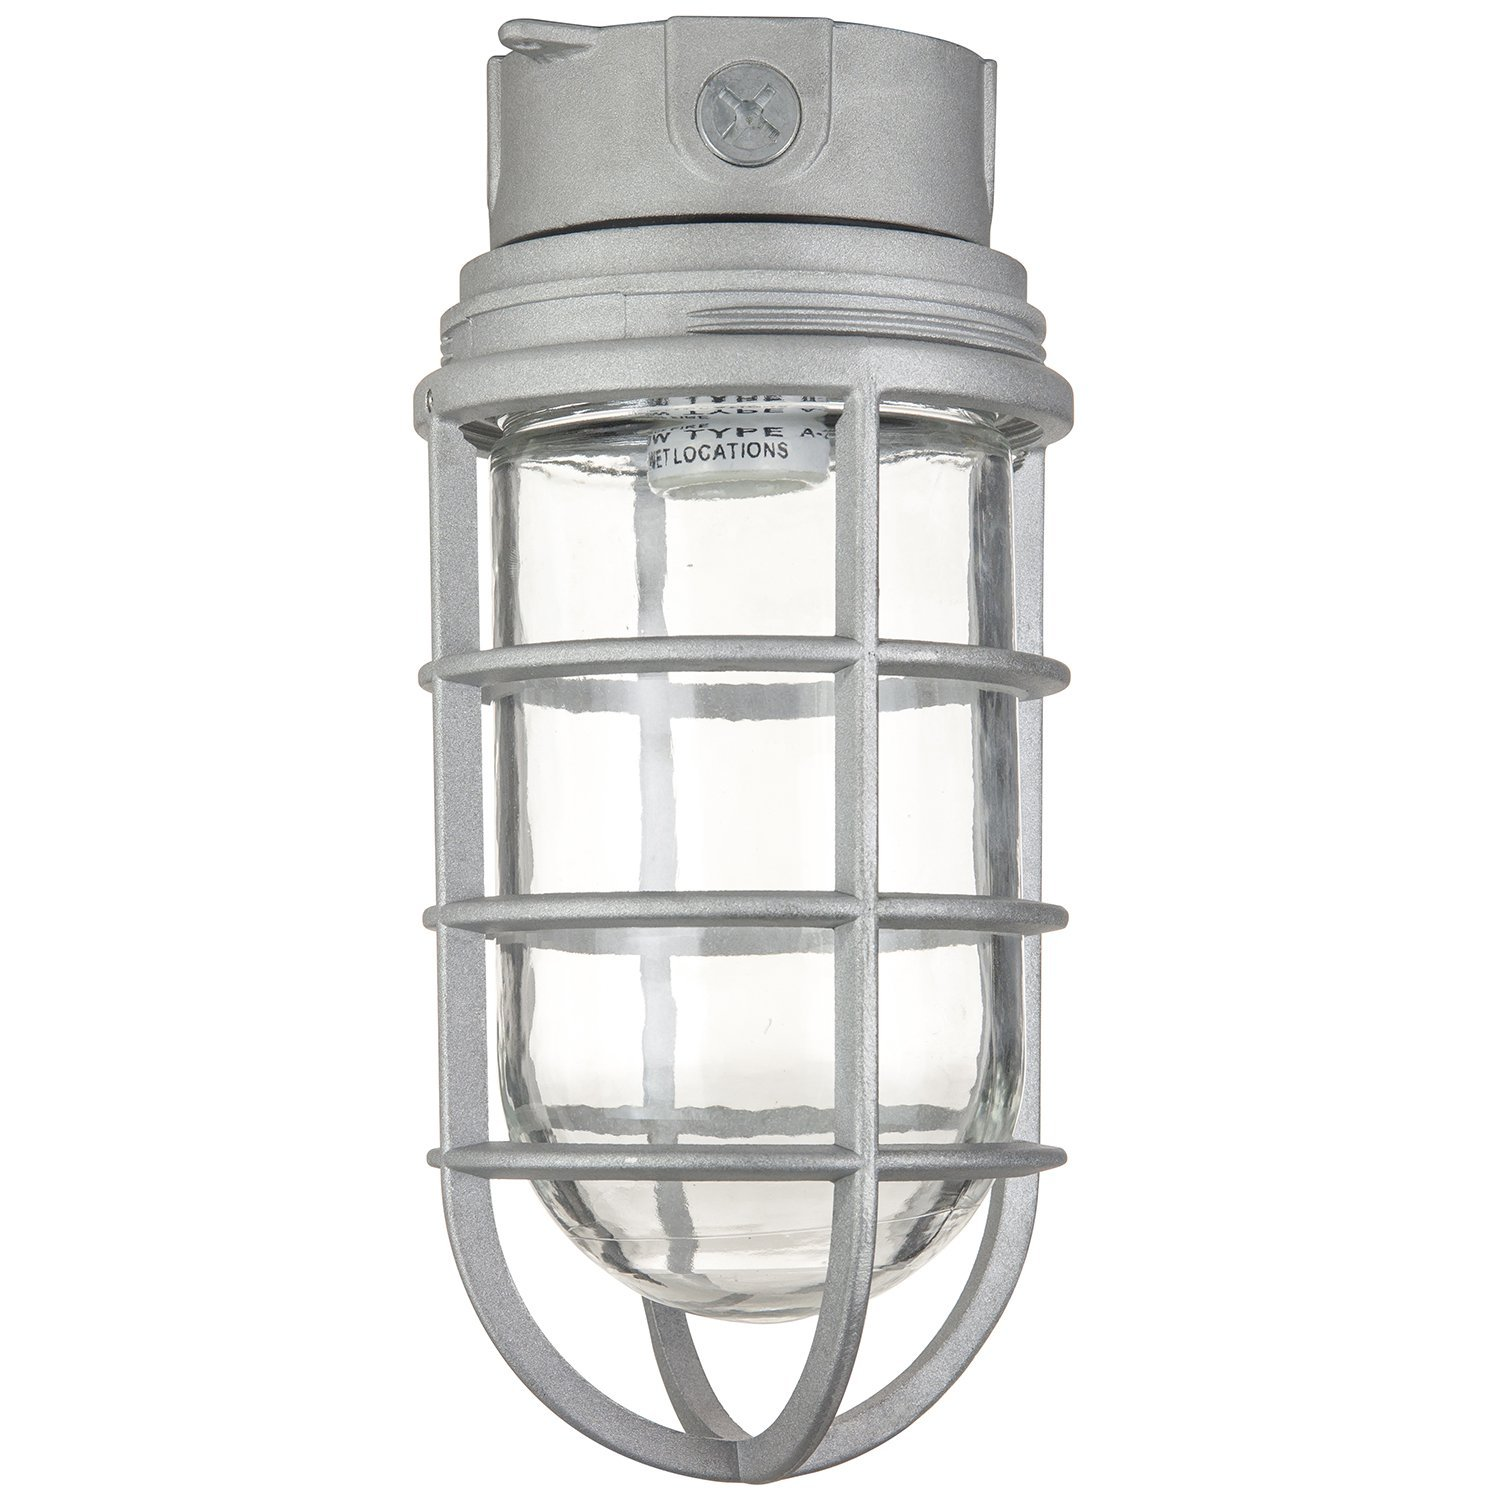 "Sunlite VT201 Ceiling Mount Vaporproof Industrial Fixture with Metallic Finish Clear Glass and 3/4"" Piping"